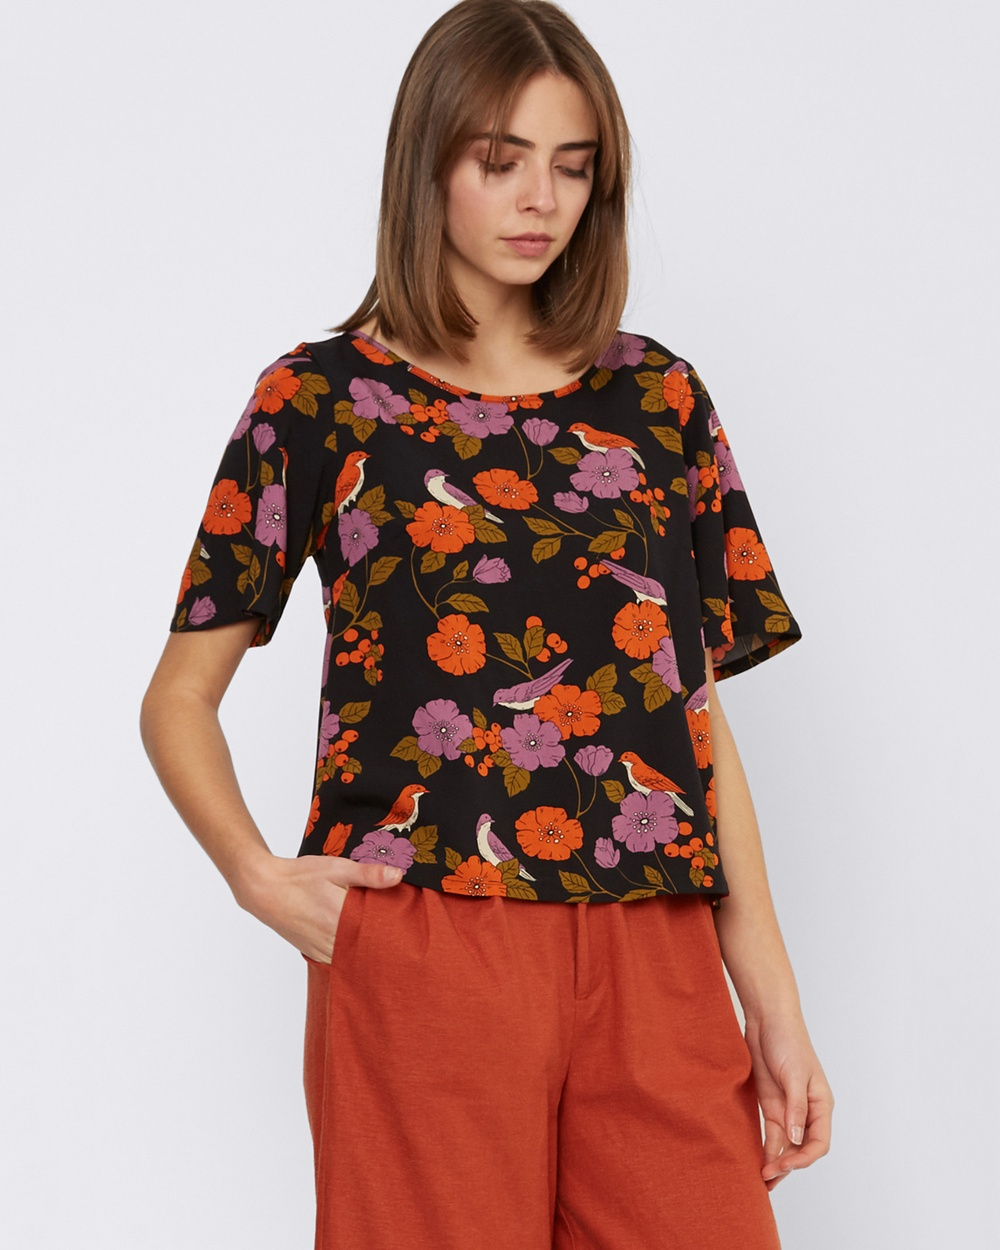 Princess Highway Bird And Berry Top Tops Black Bird And Berry Top